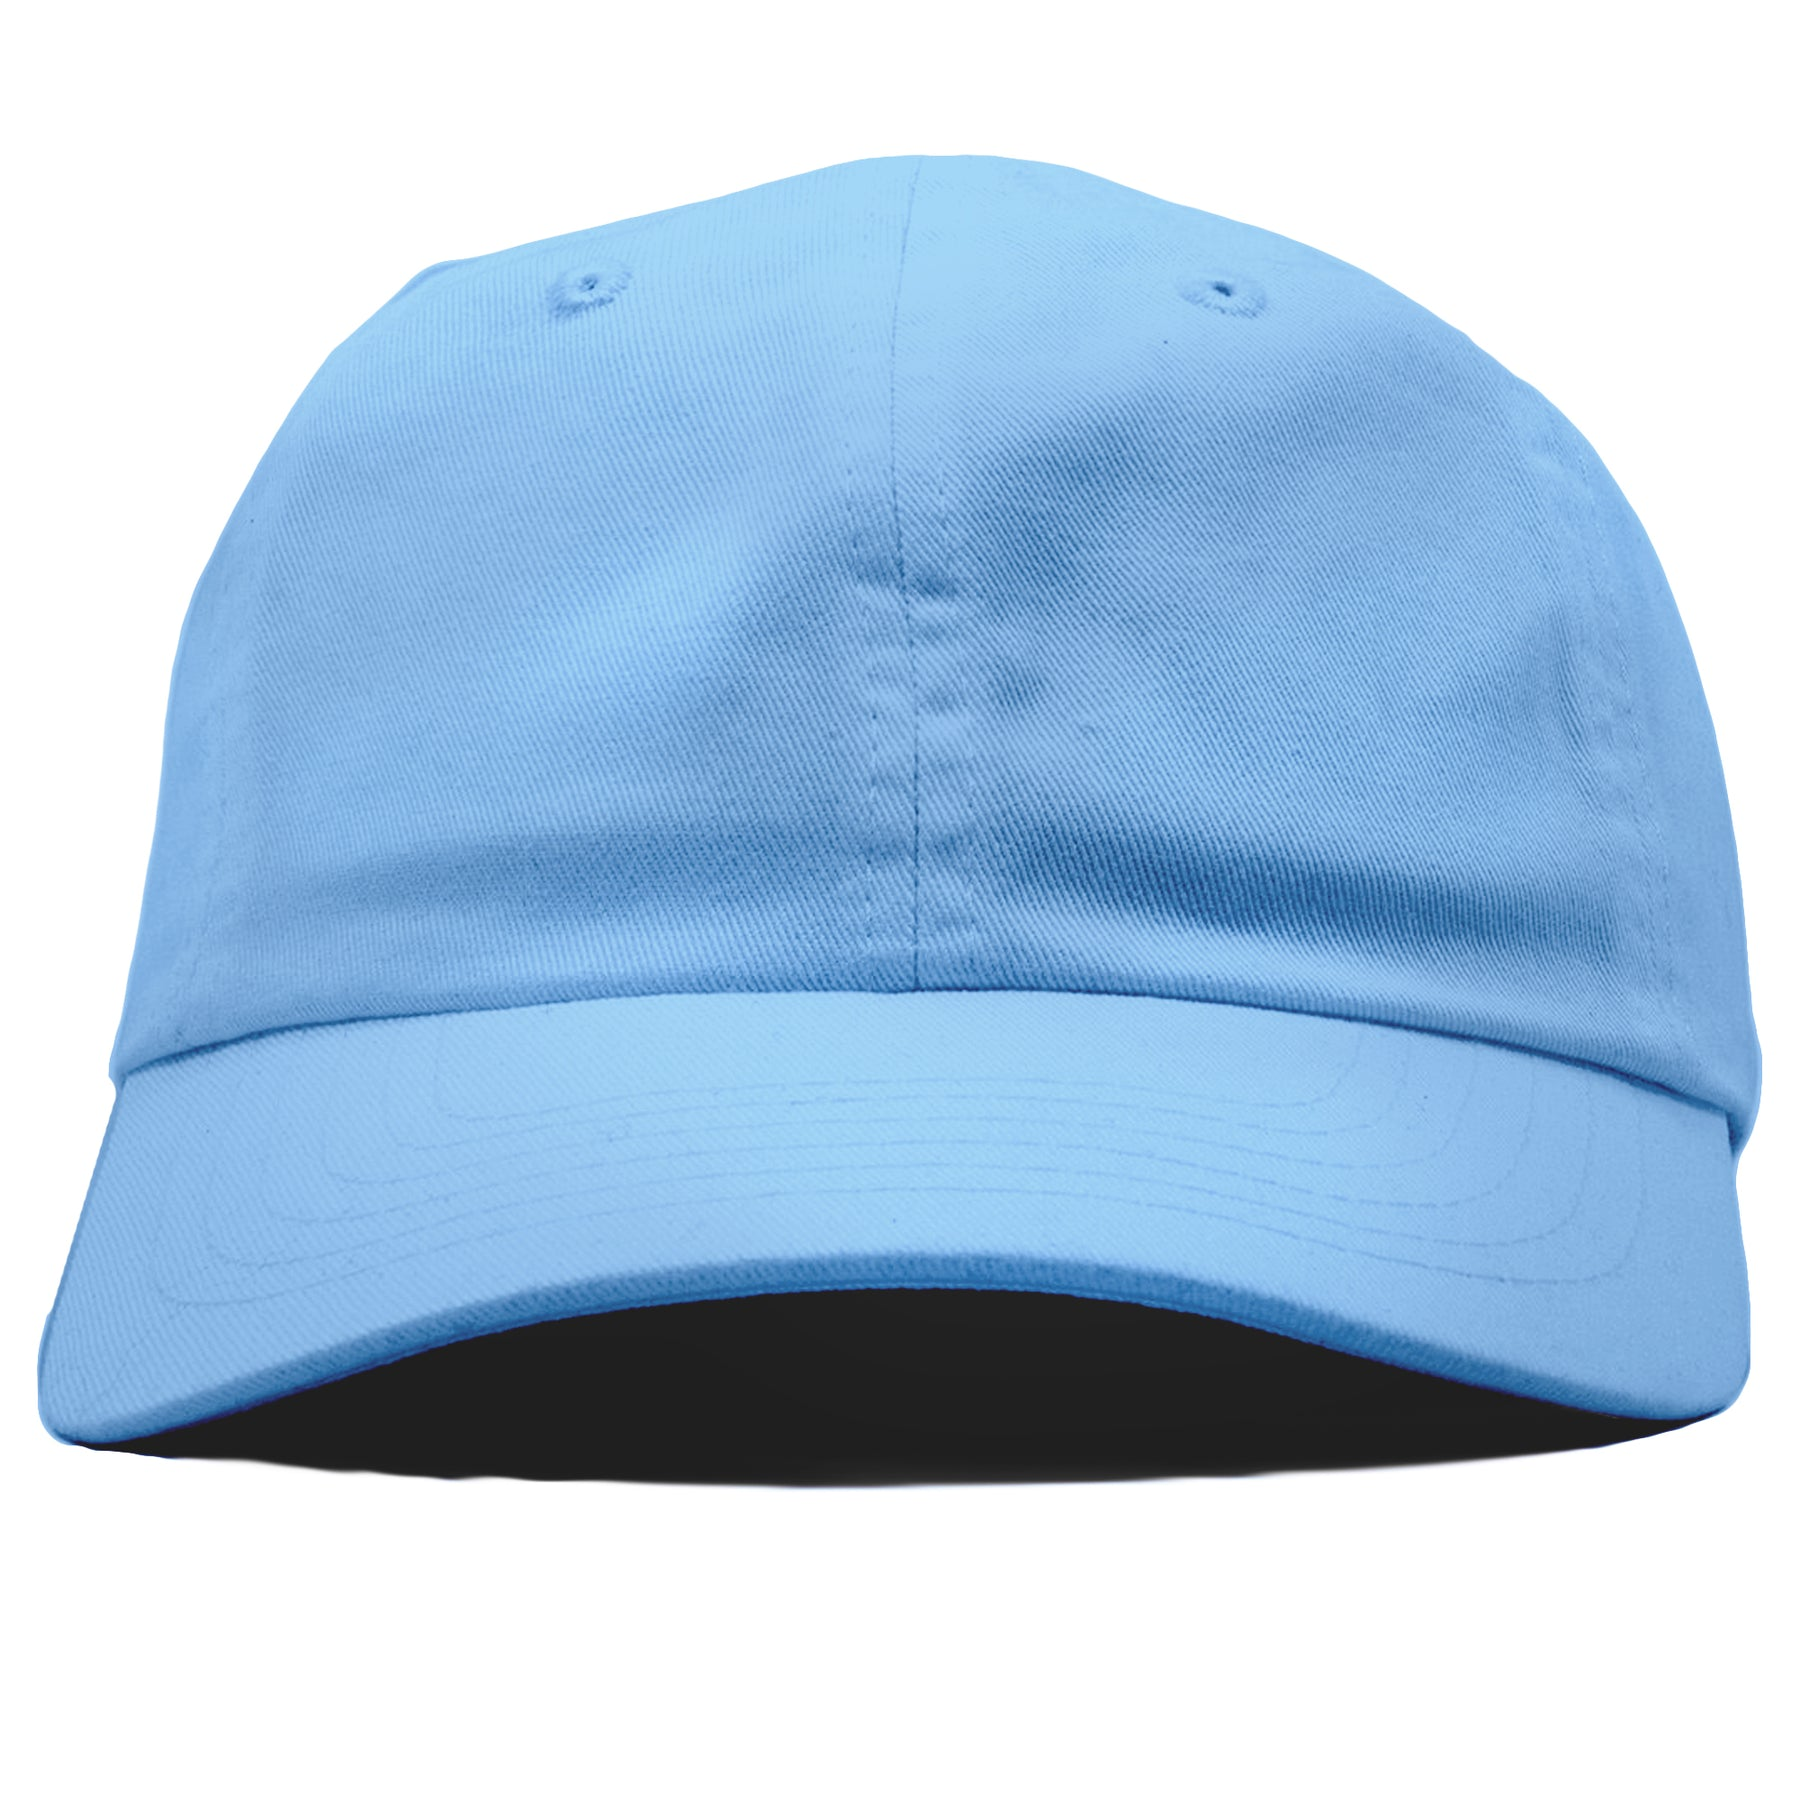 19ea48baf0e The blank sky blue dad hat has no design on the front